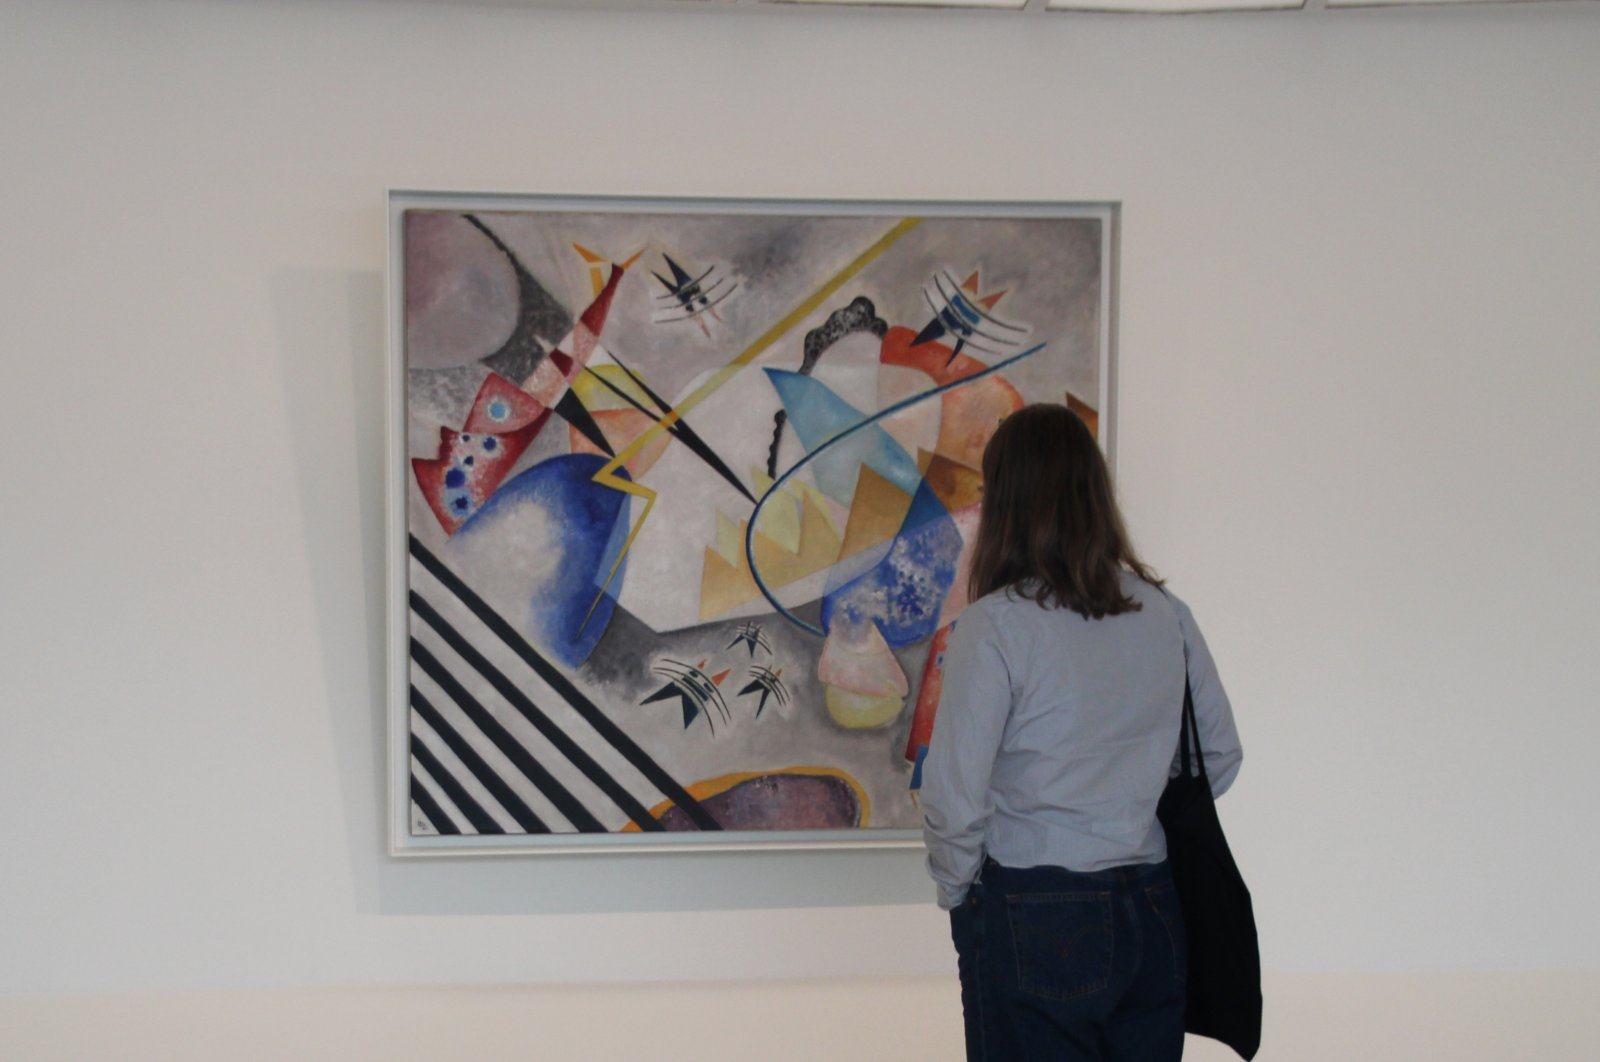 A visitor examines a work by Russian artist Wassily Kandinsky at New York's Guggenheim museum. (DPA Photo)